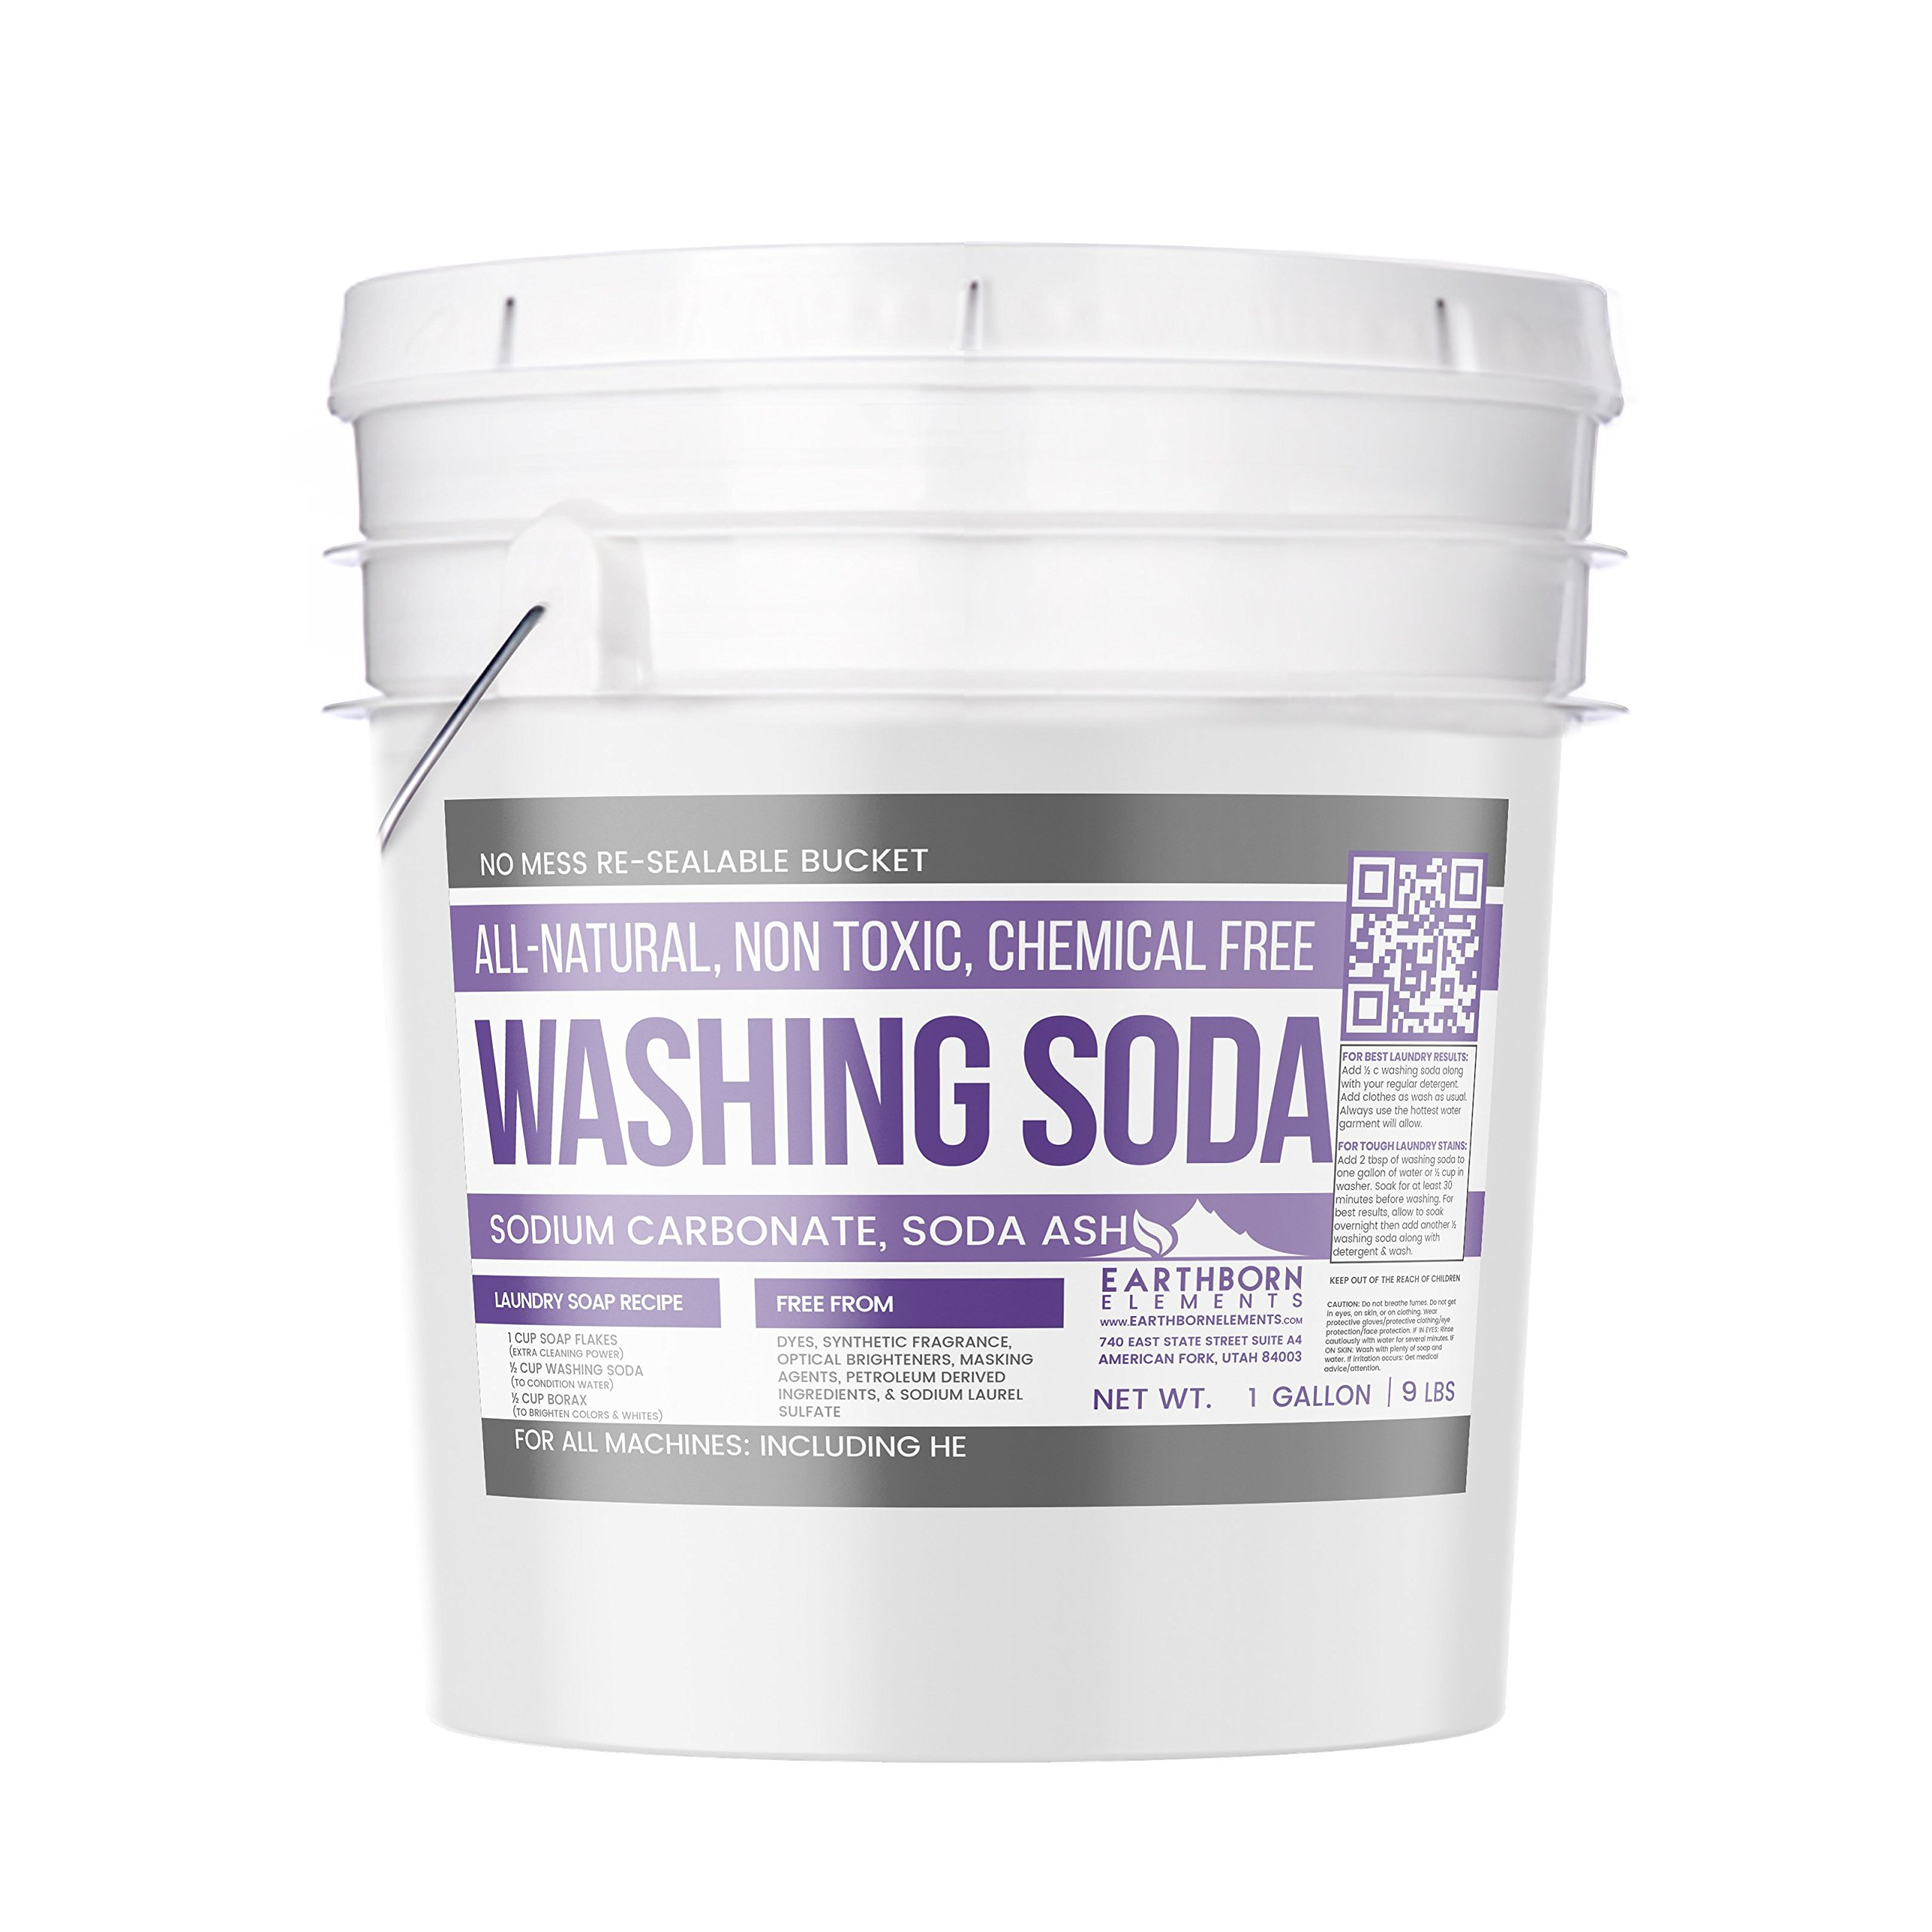 All-Natural Washing Soda (1 Gallon (9 lbs)) by Earthborn Elements, Soda Ash, Sodium Carbonate, Laundry Booster, Non Toxic, Hypoallergenic by Earthborn Elements